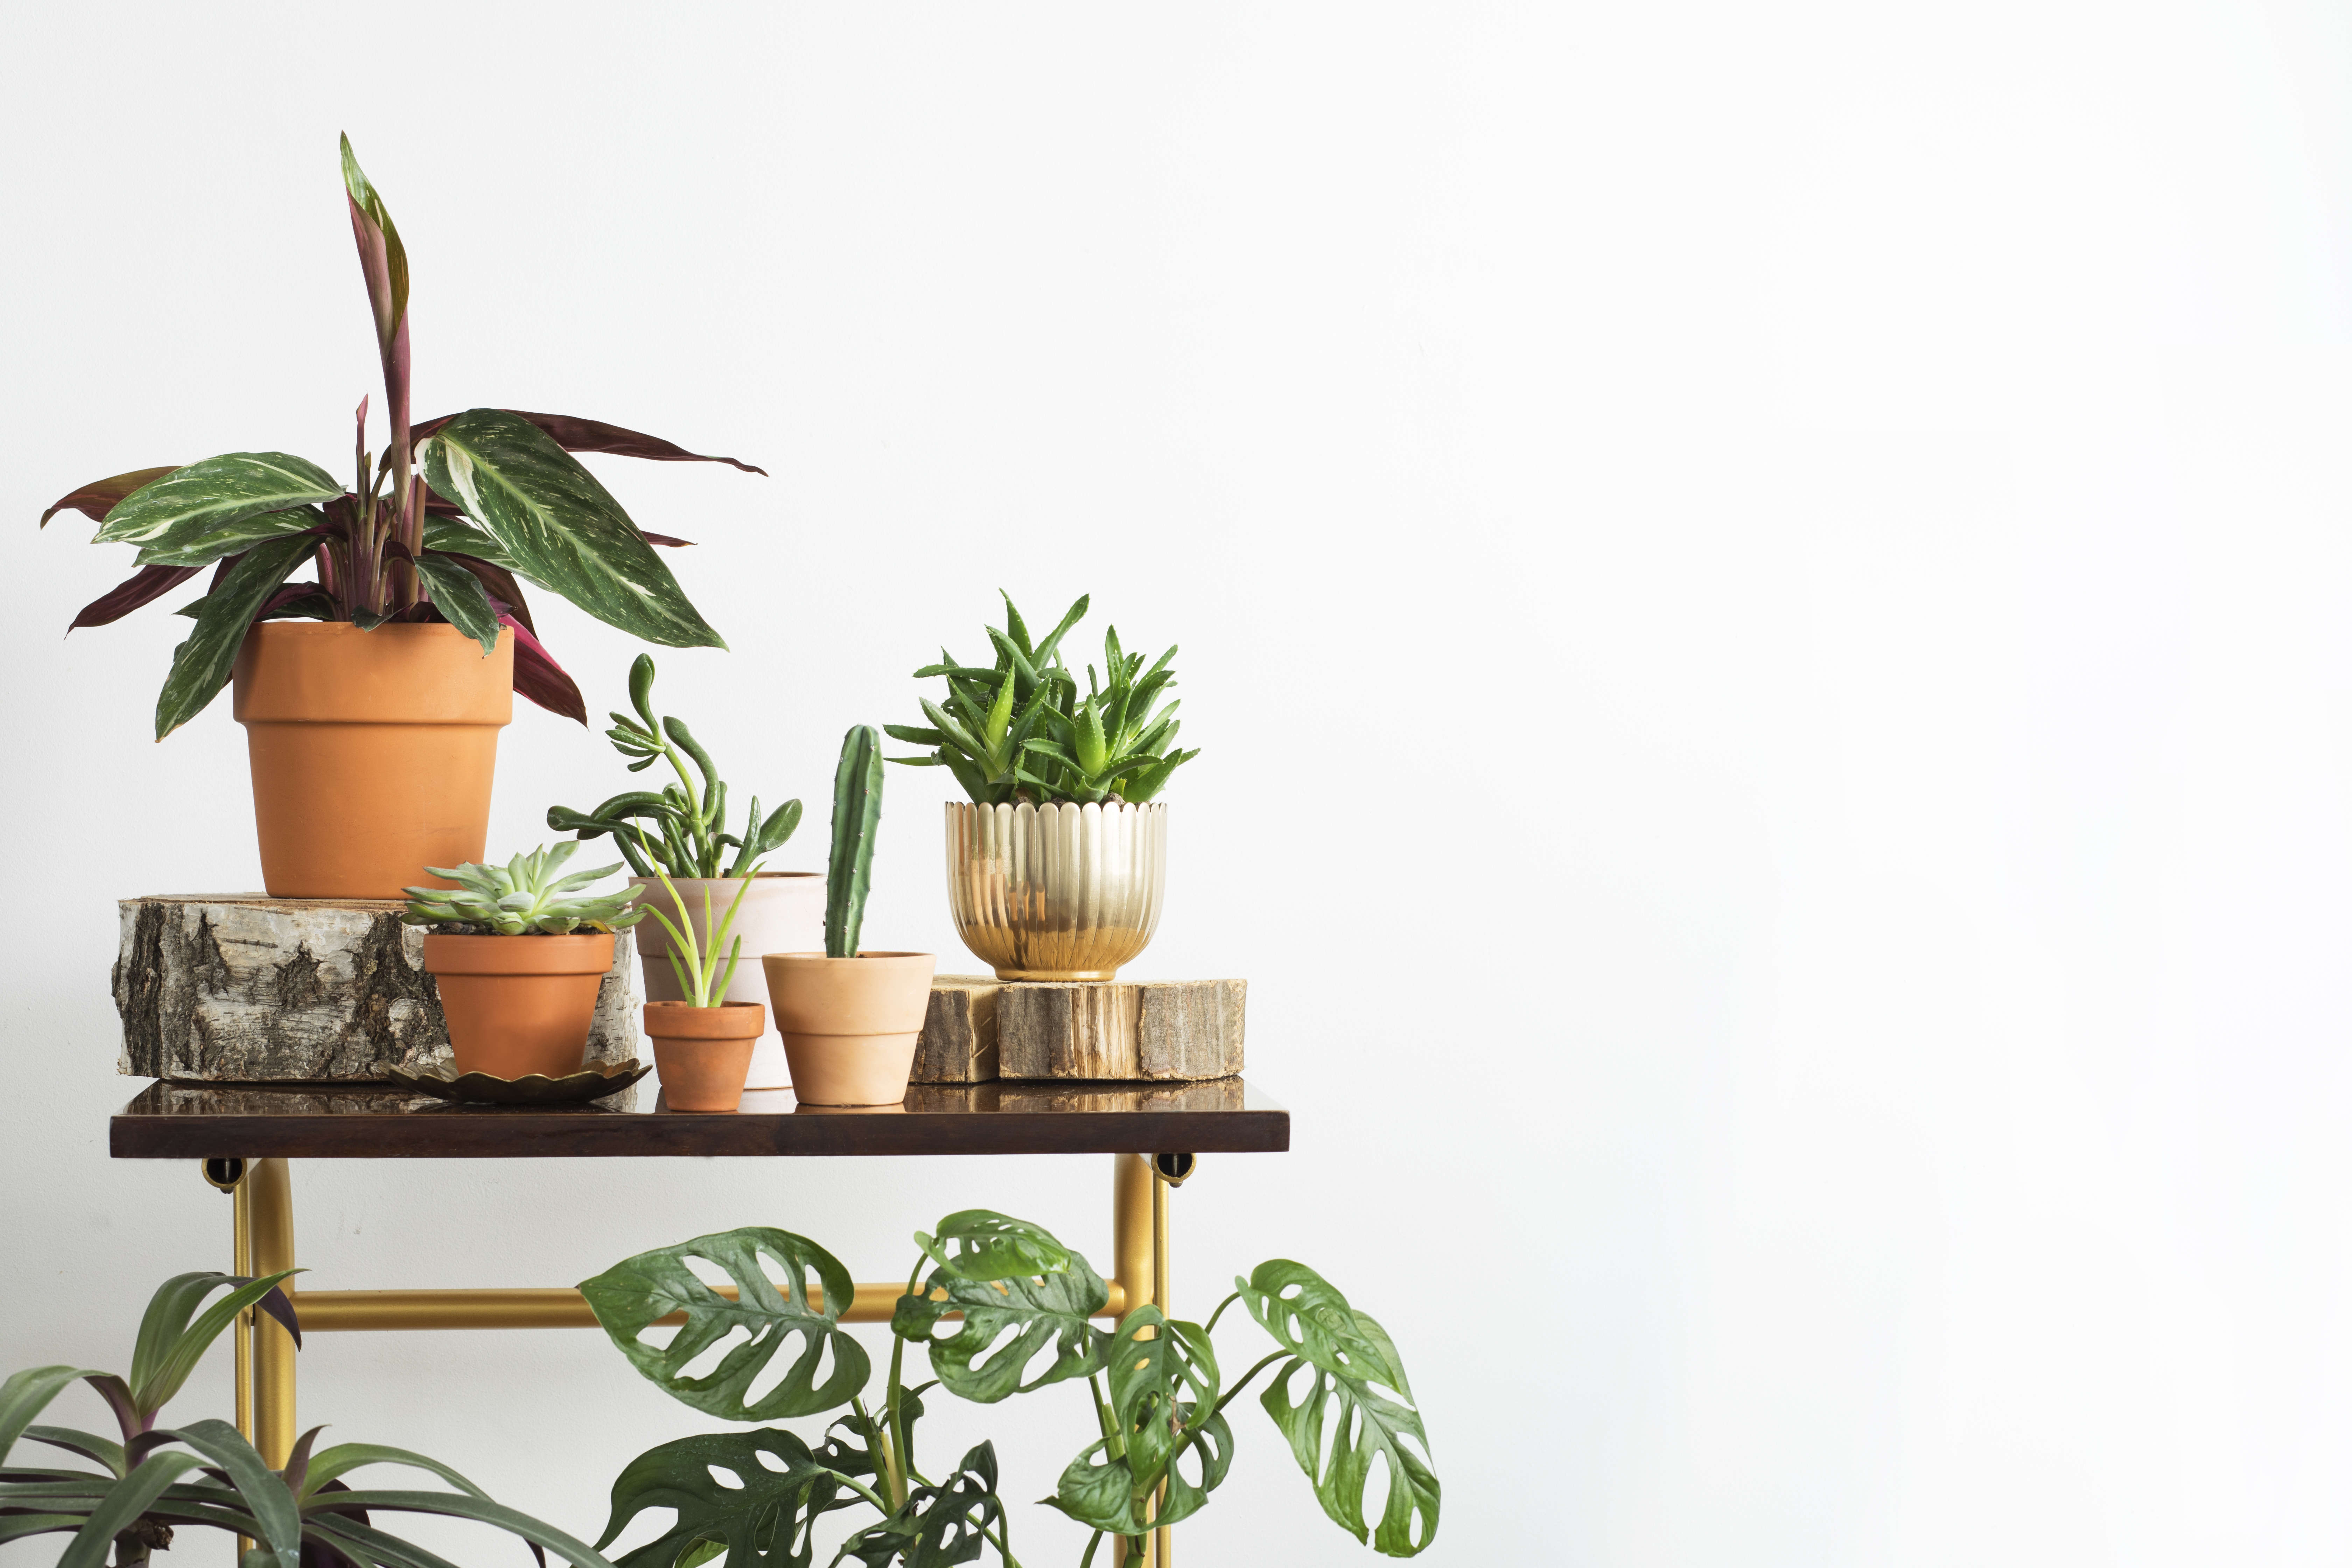 blog image of indoor plants; blog title: 5 Indoor Plants That Decorate and Purify Your Apartment